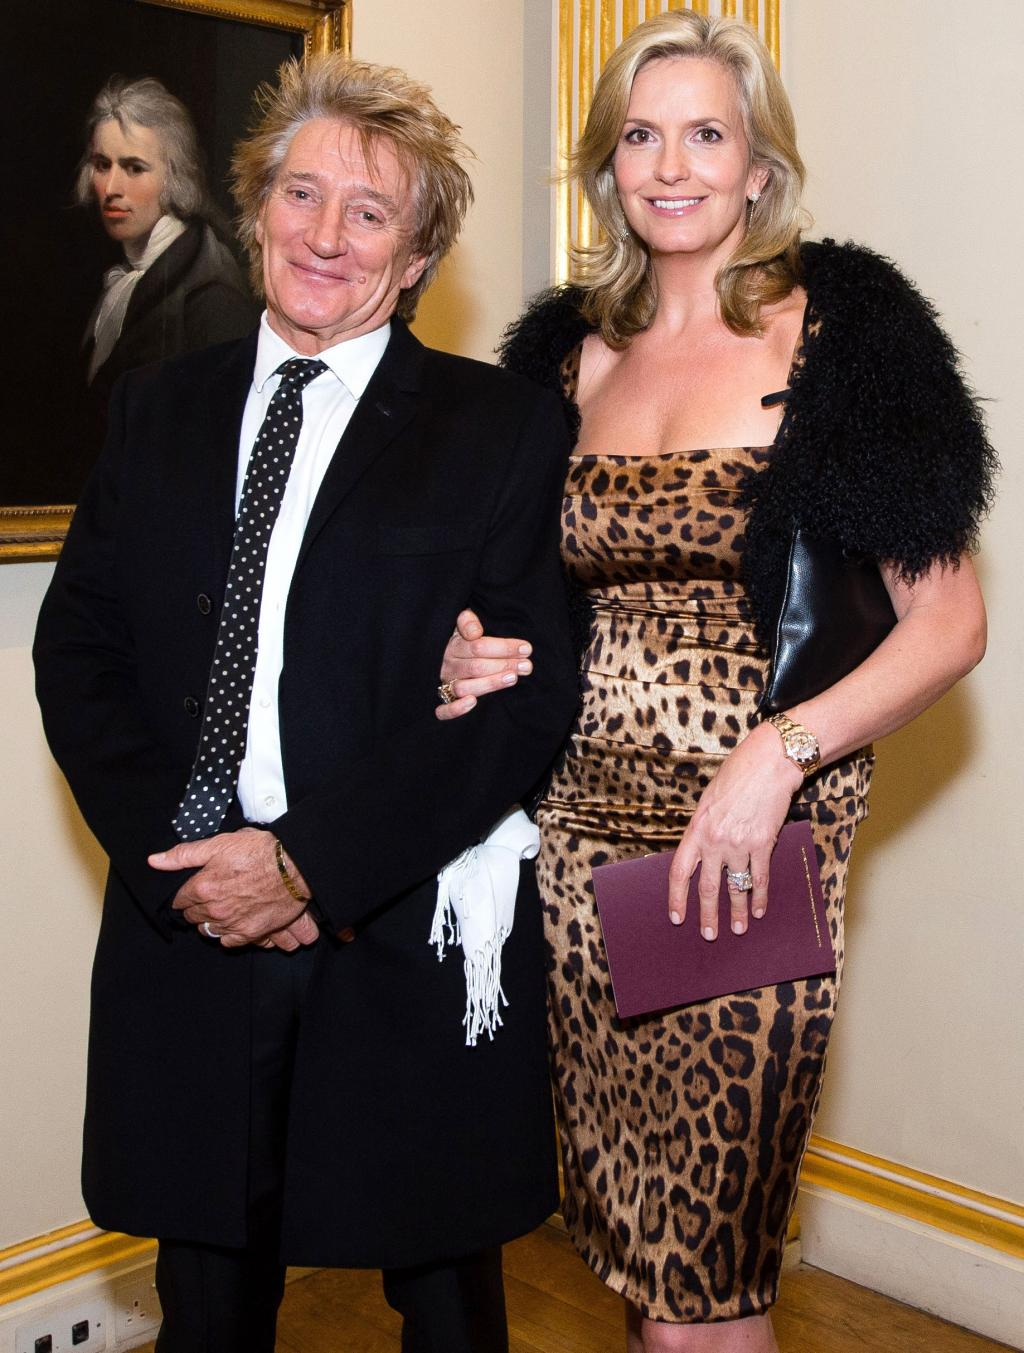 Rod Stewart and Penny Lancaster Renew Wedding Vows 10 Years After Tying the Knot